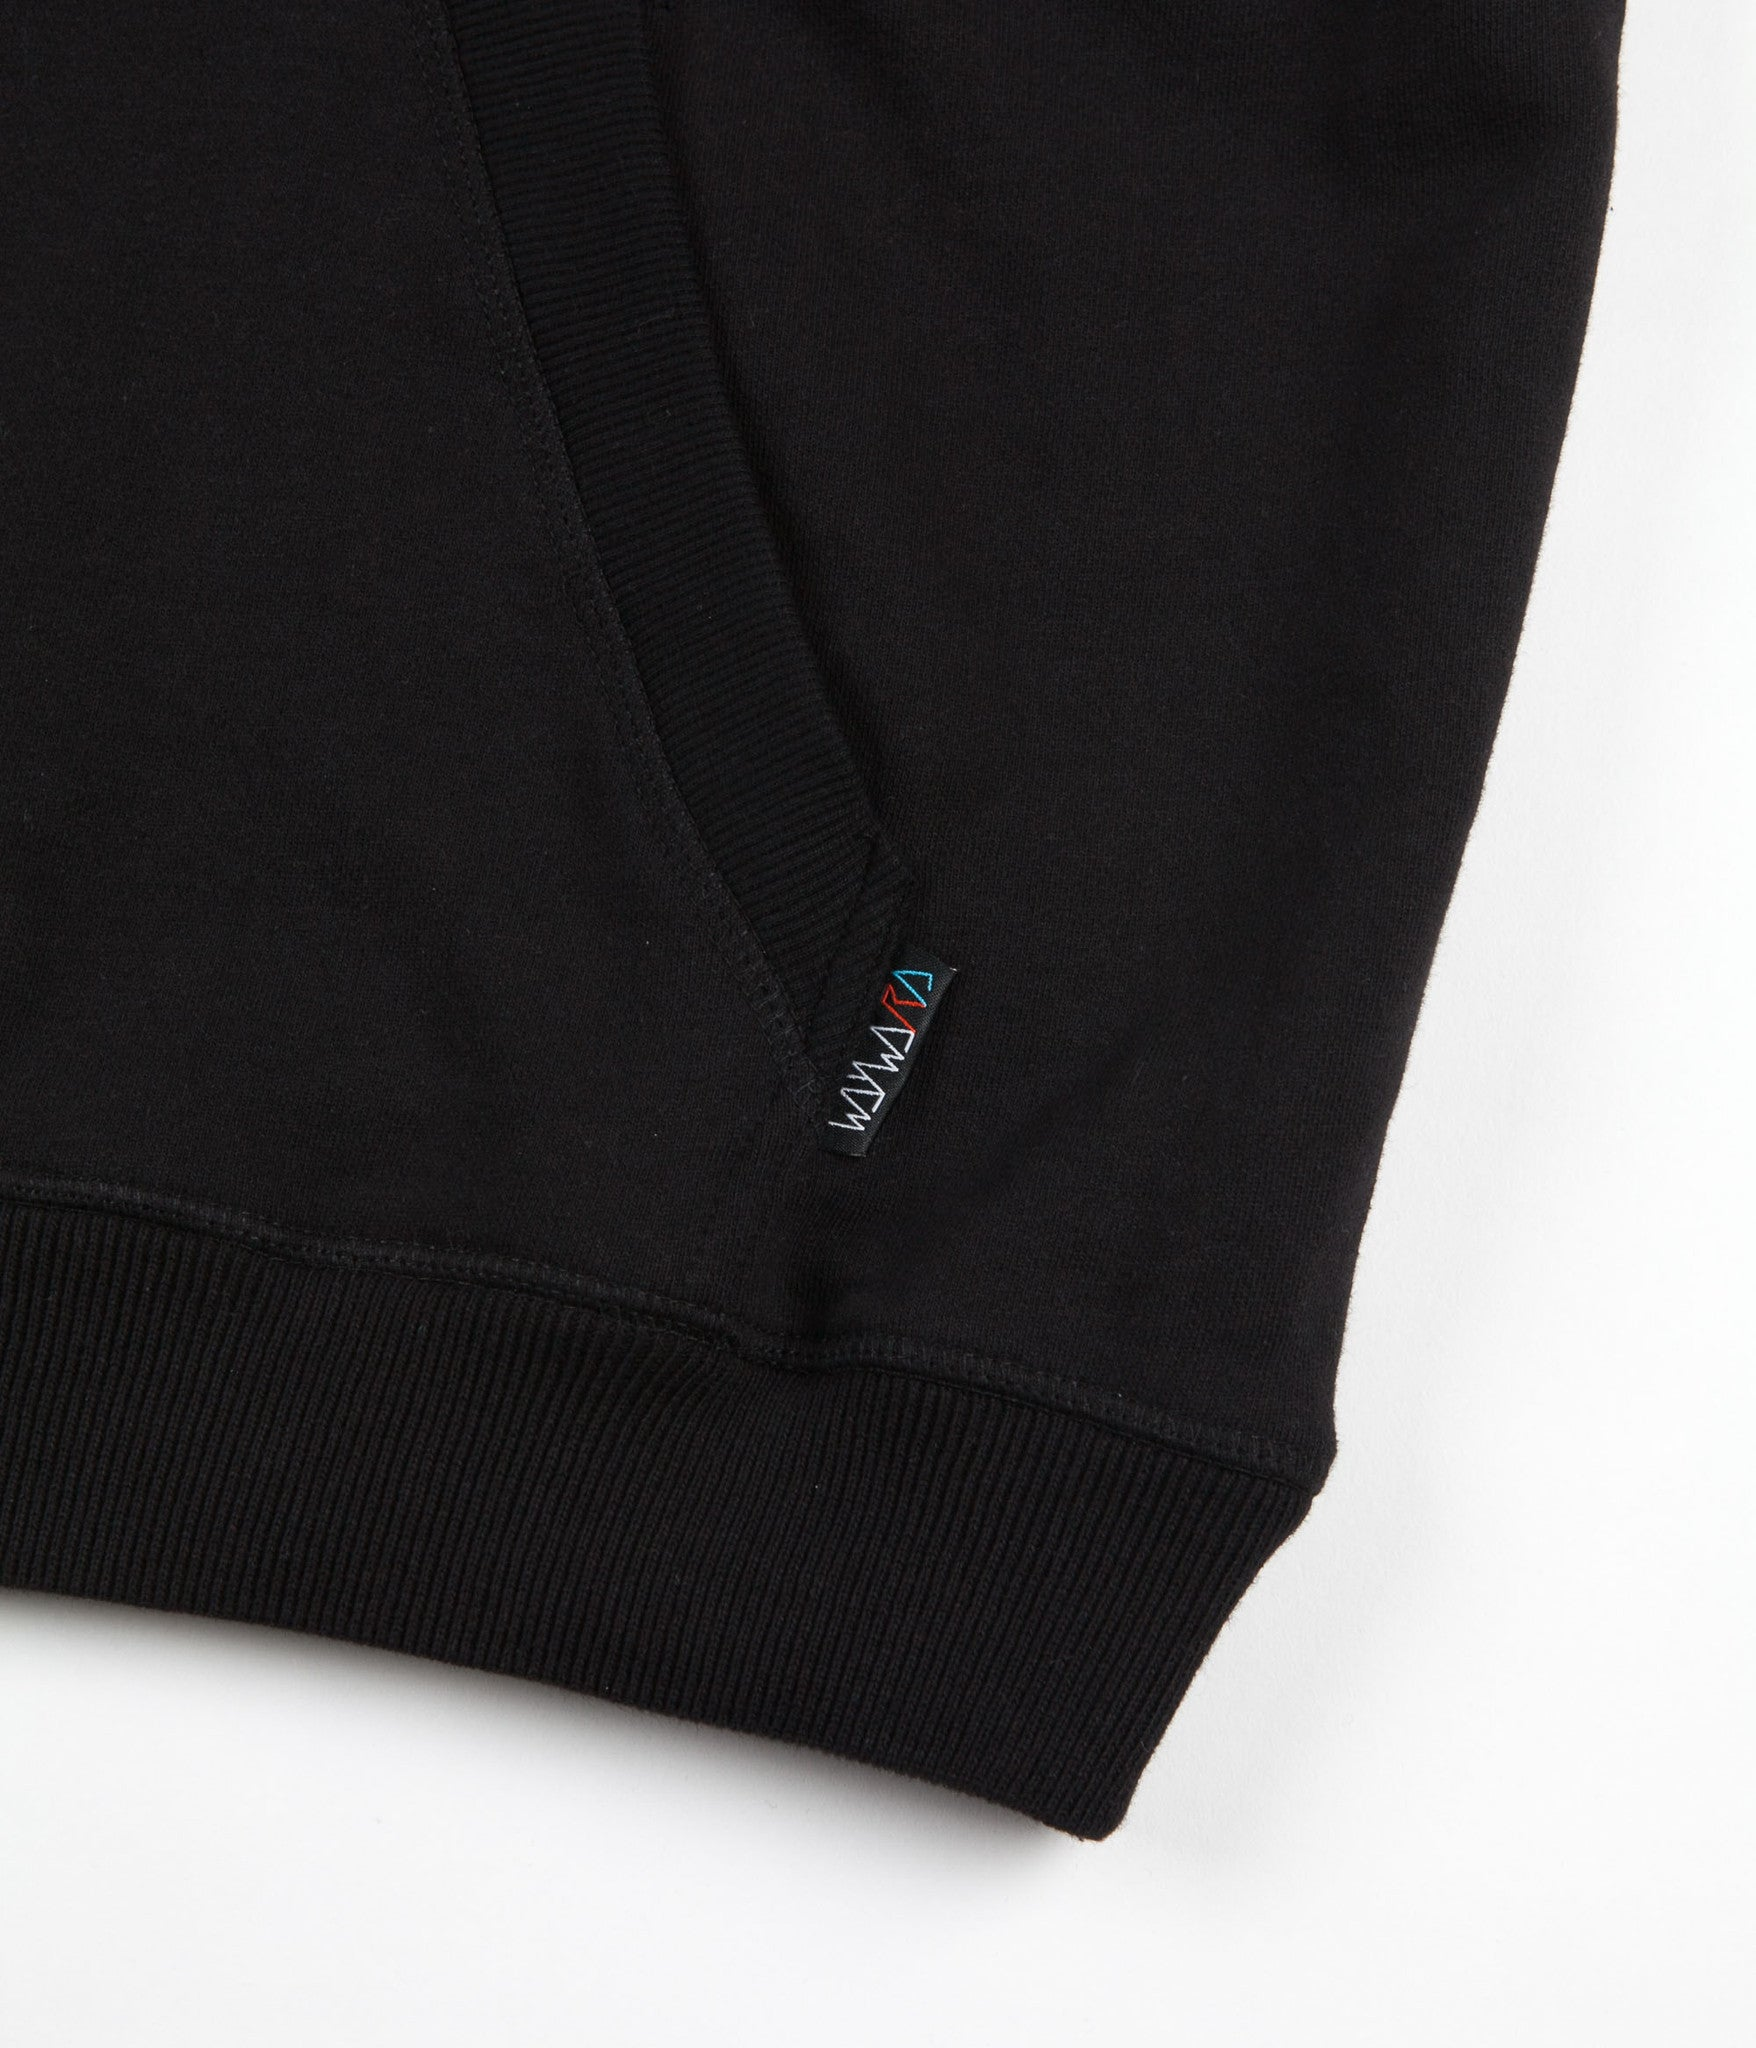 Wayward Strider Hooded Sweatshirt - Black